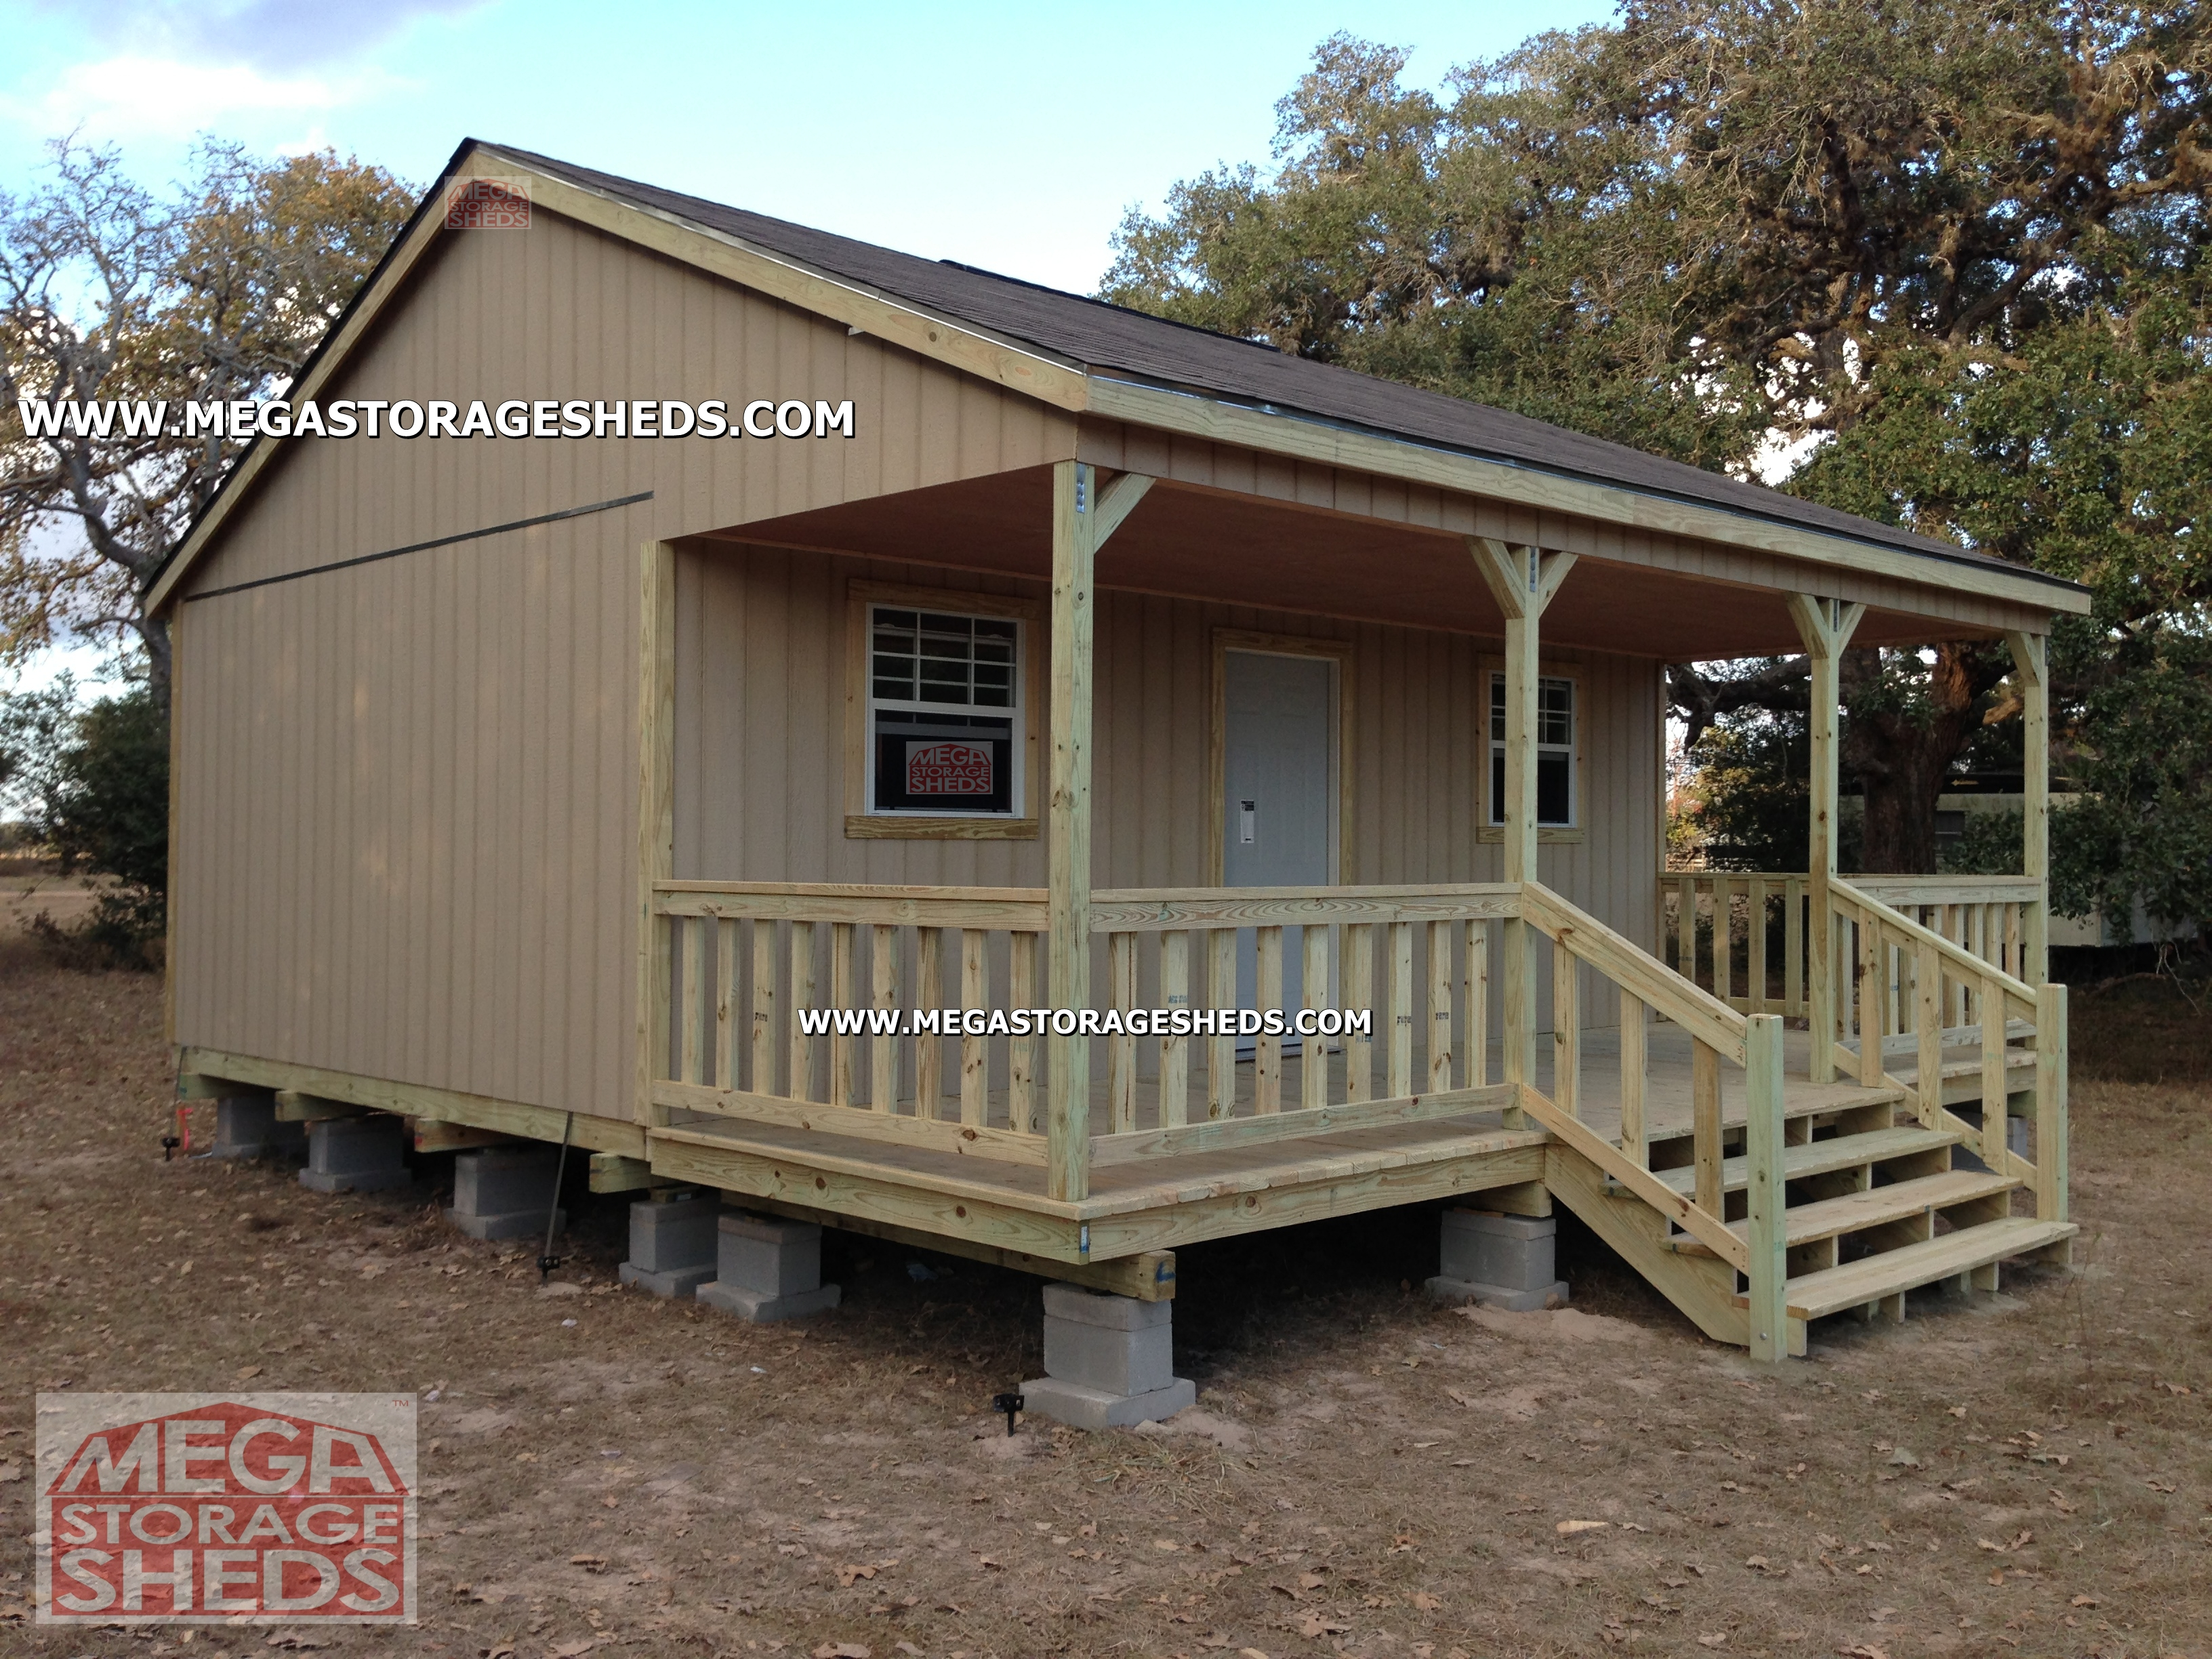 Mega Storage Sheds Ranch Cabins with regard to size 3264 X 2448